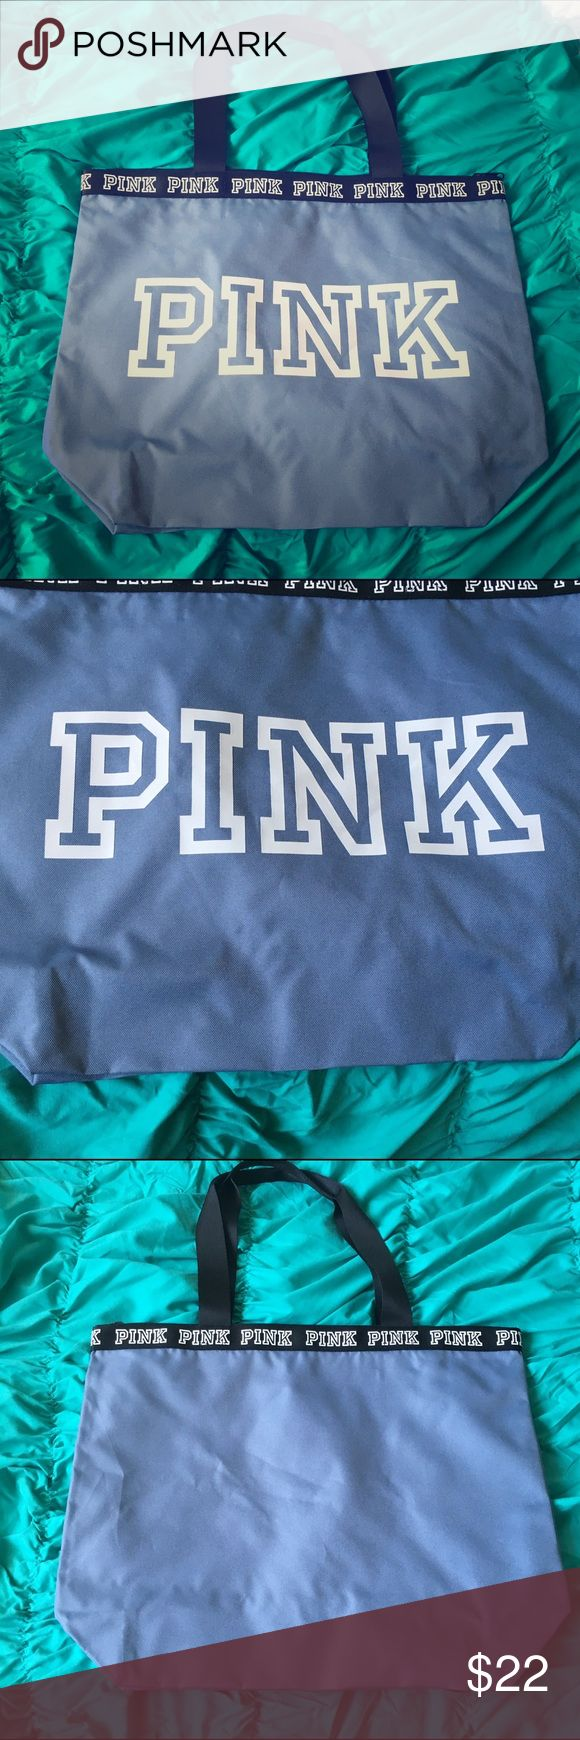 Vs pink tote bag Brand new light blue and white tote bag from pink PINK Victoria's Secret Bags Totes